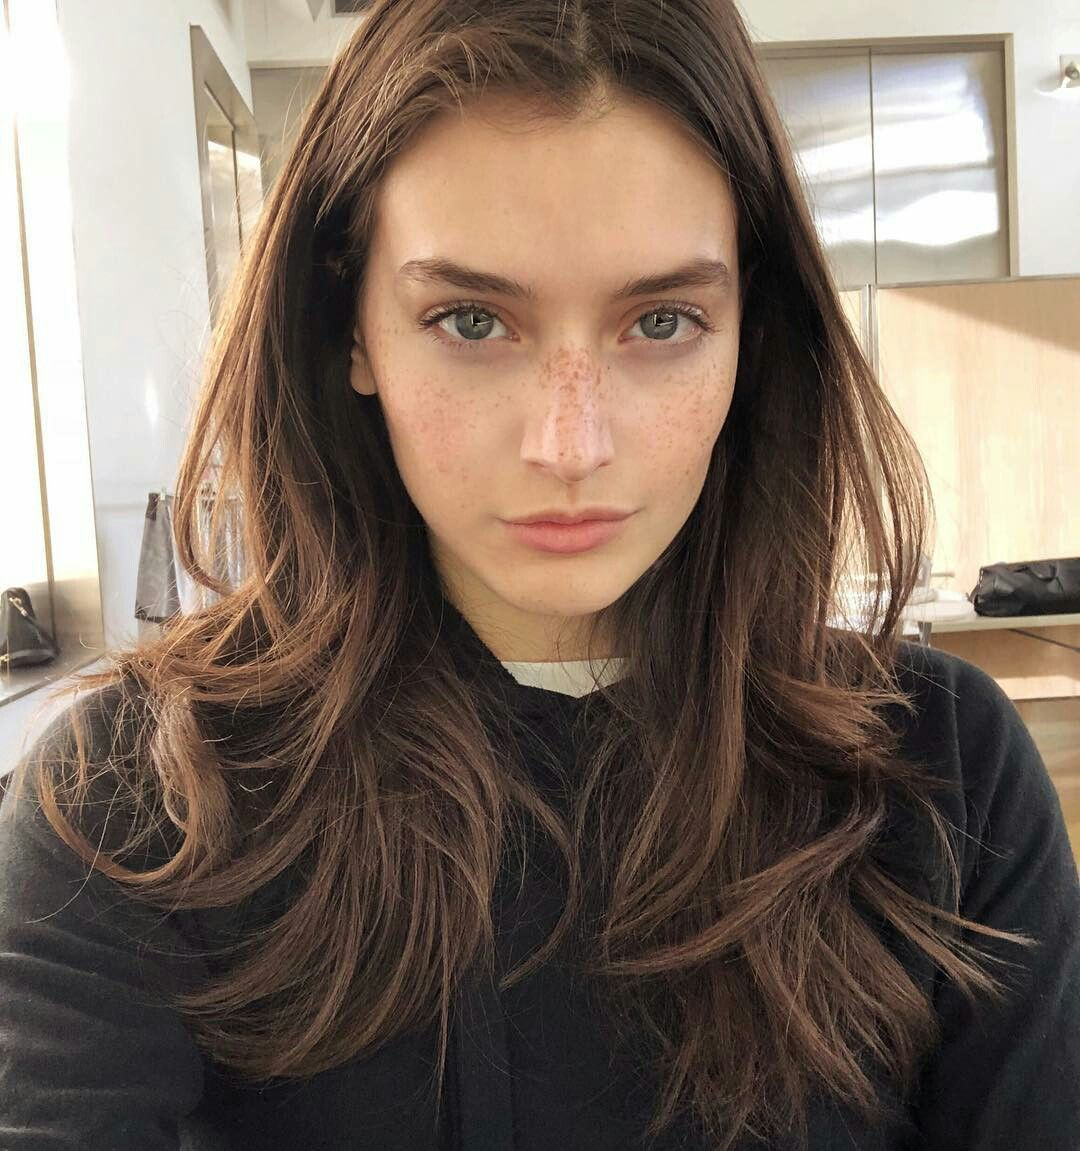 Jessica Clements